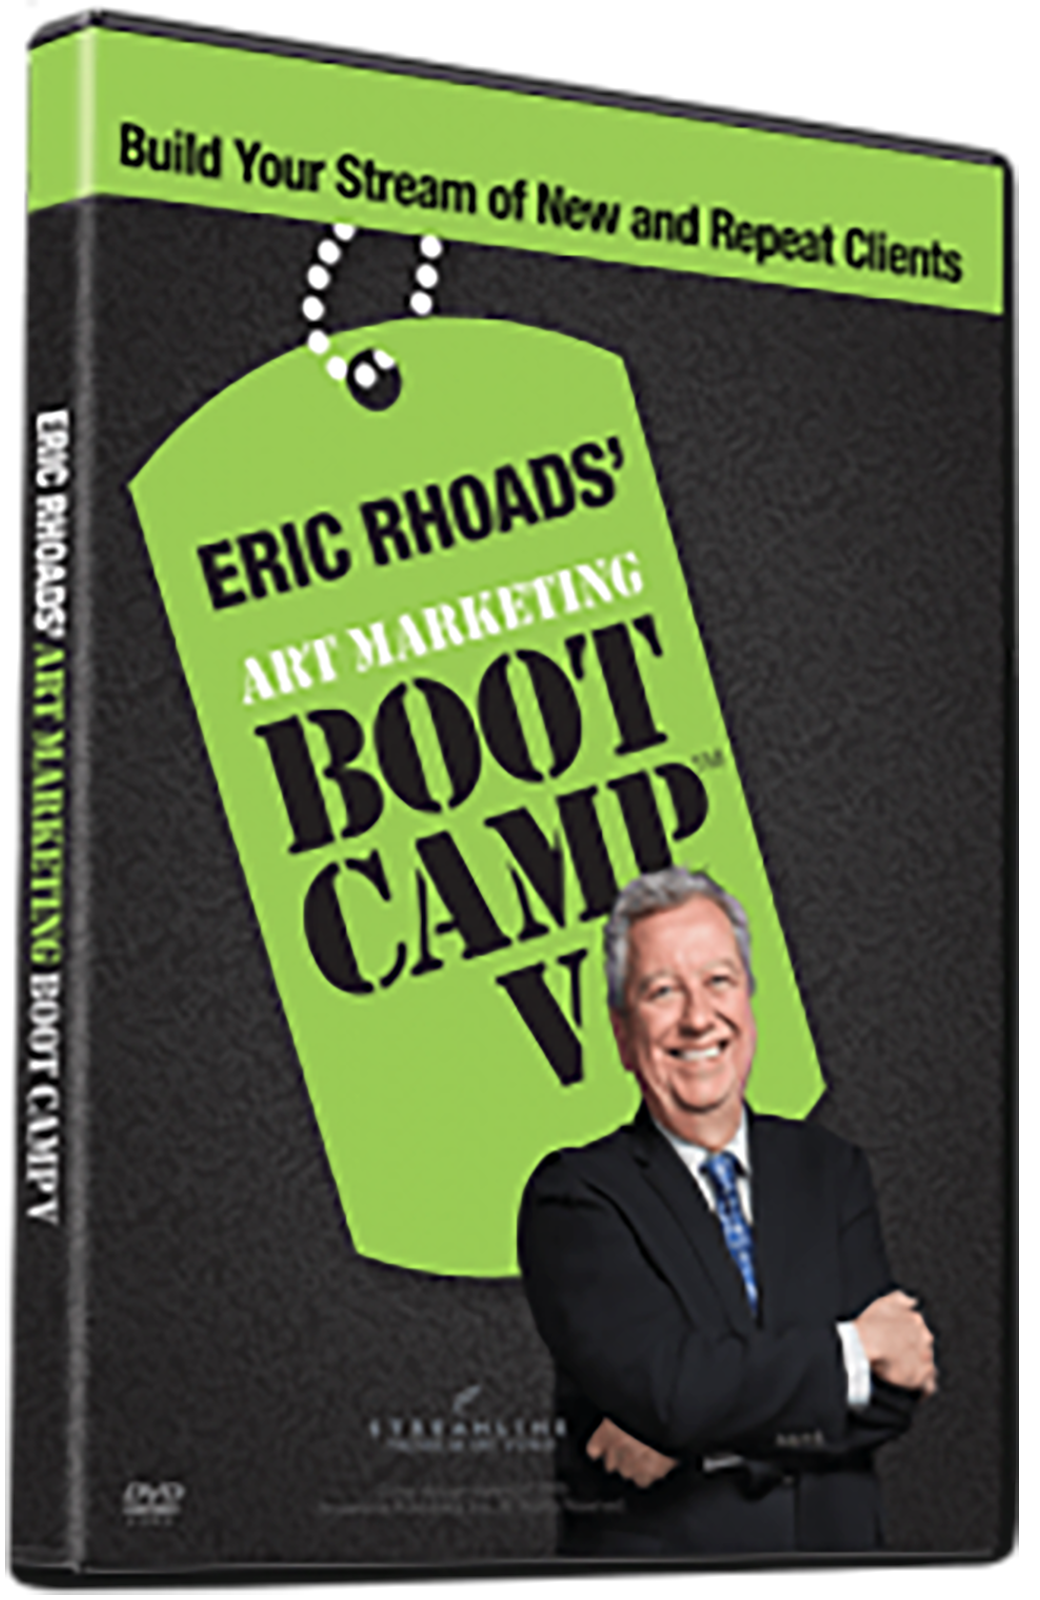 Eric Rhoads' Art Marketing Boot Camp V